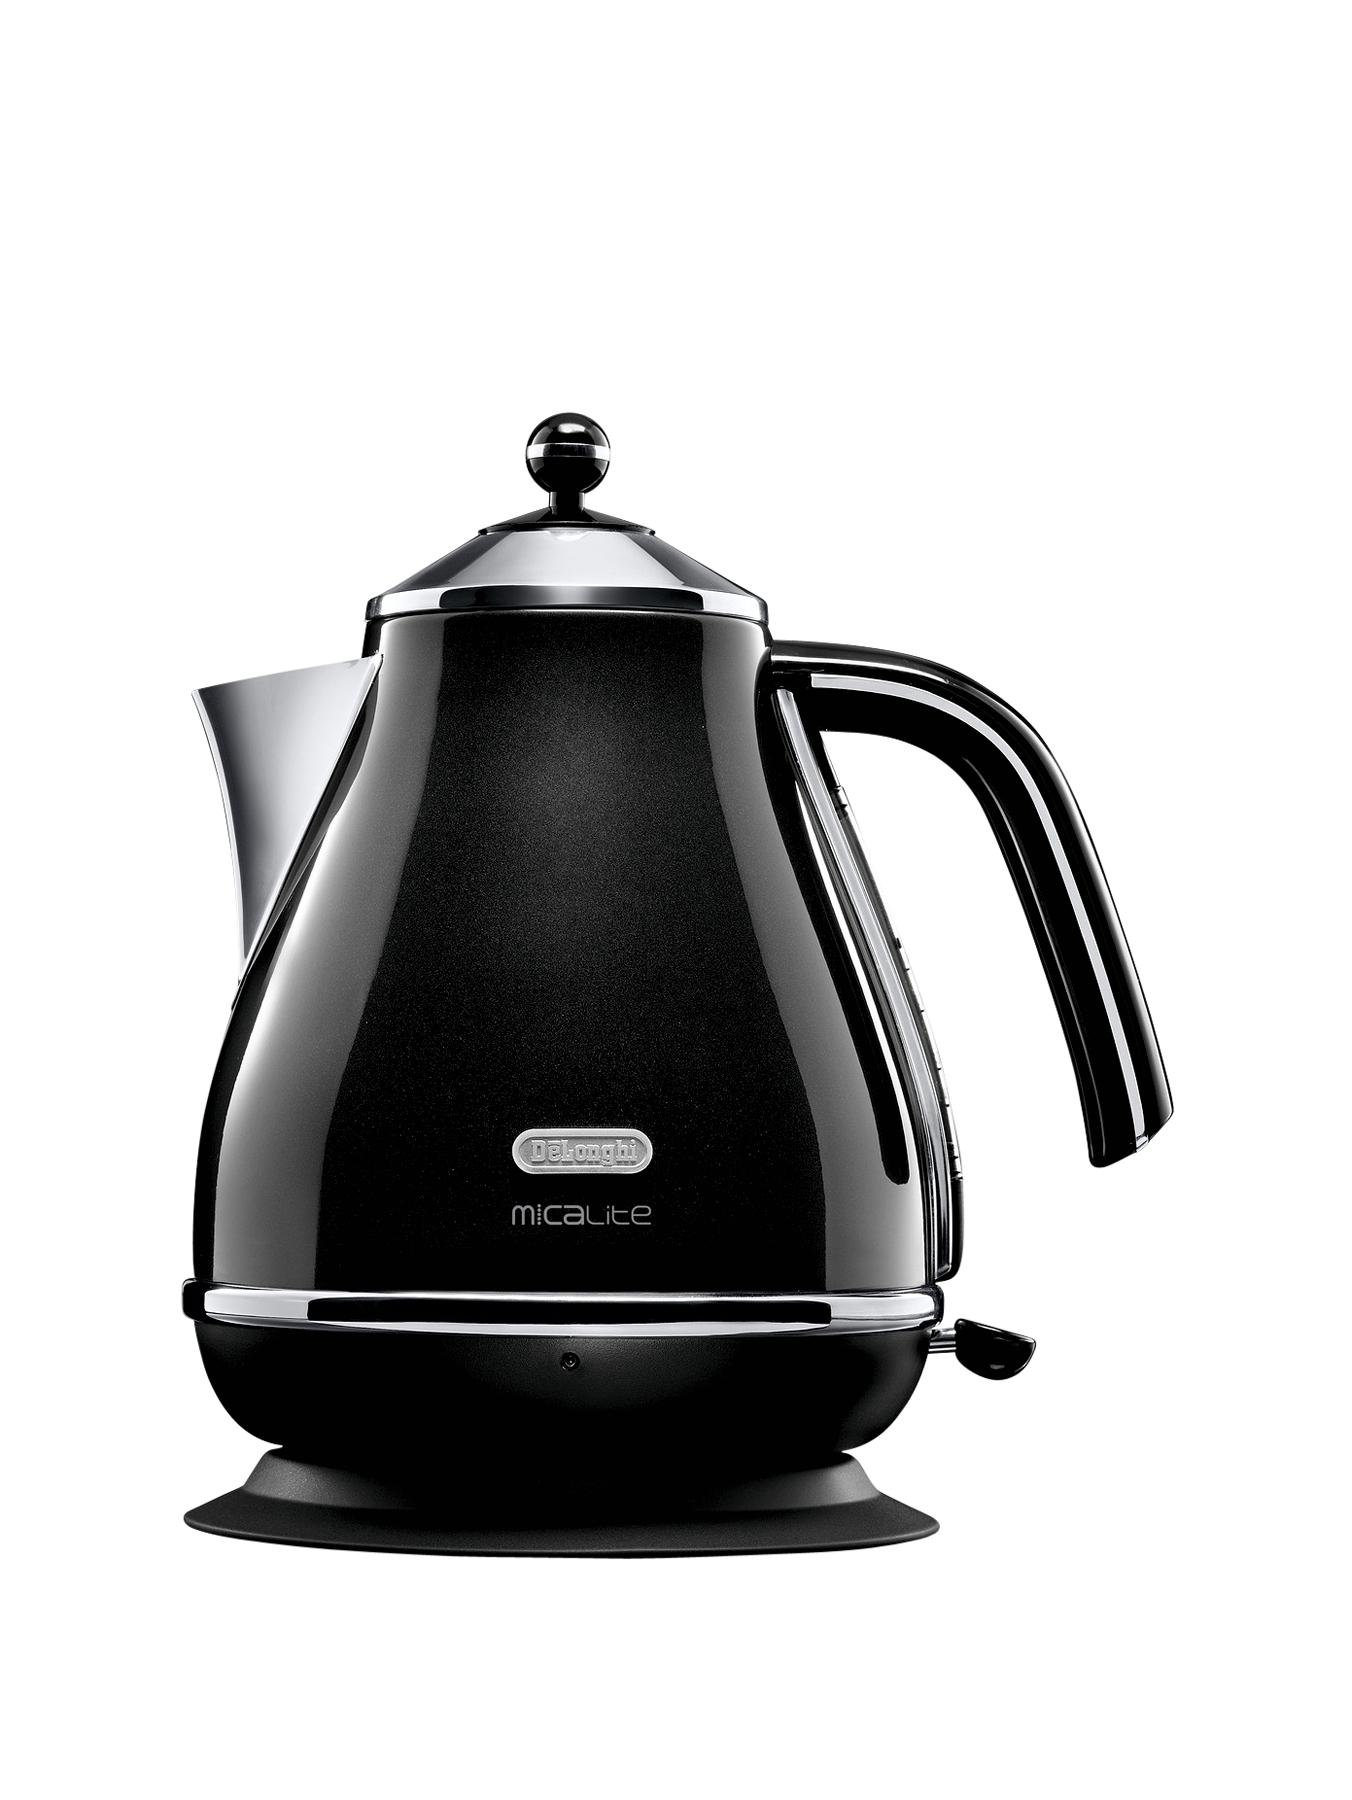 KBOM3001 Micalite Icona Kettle - Black